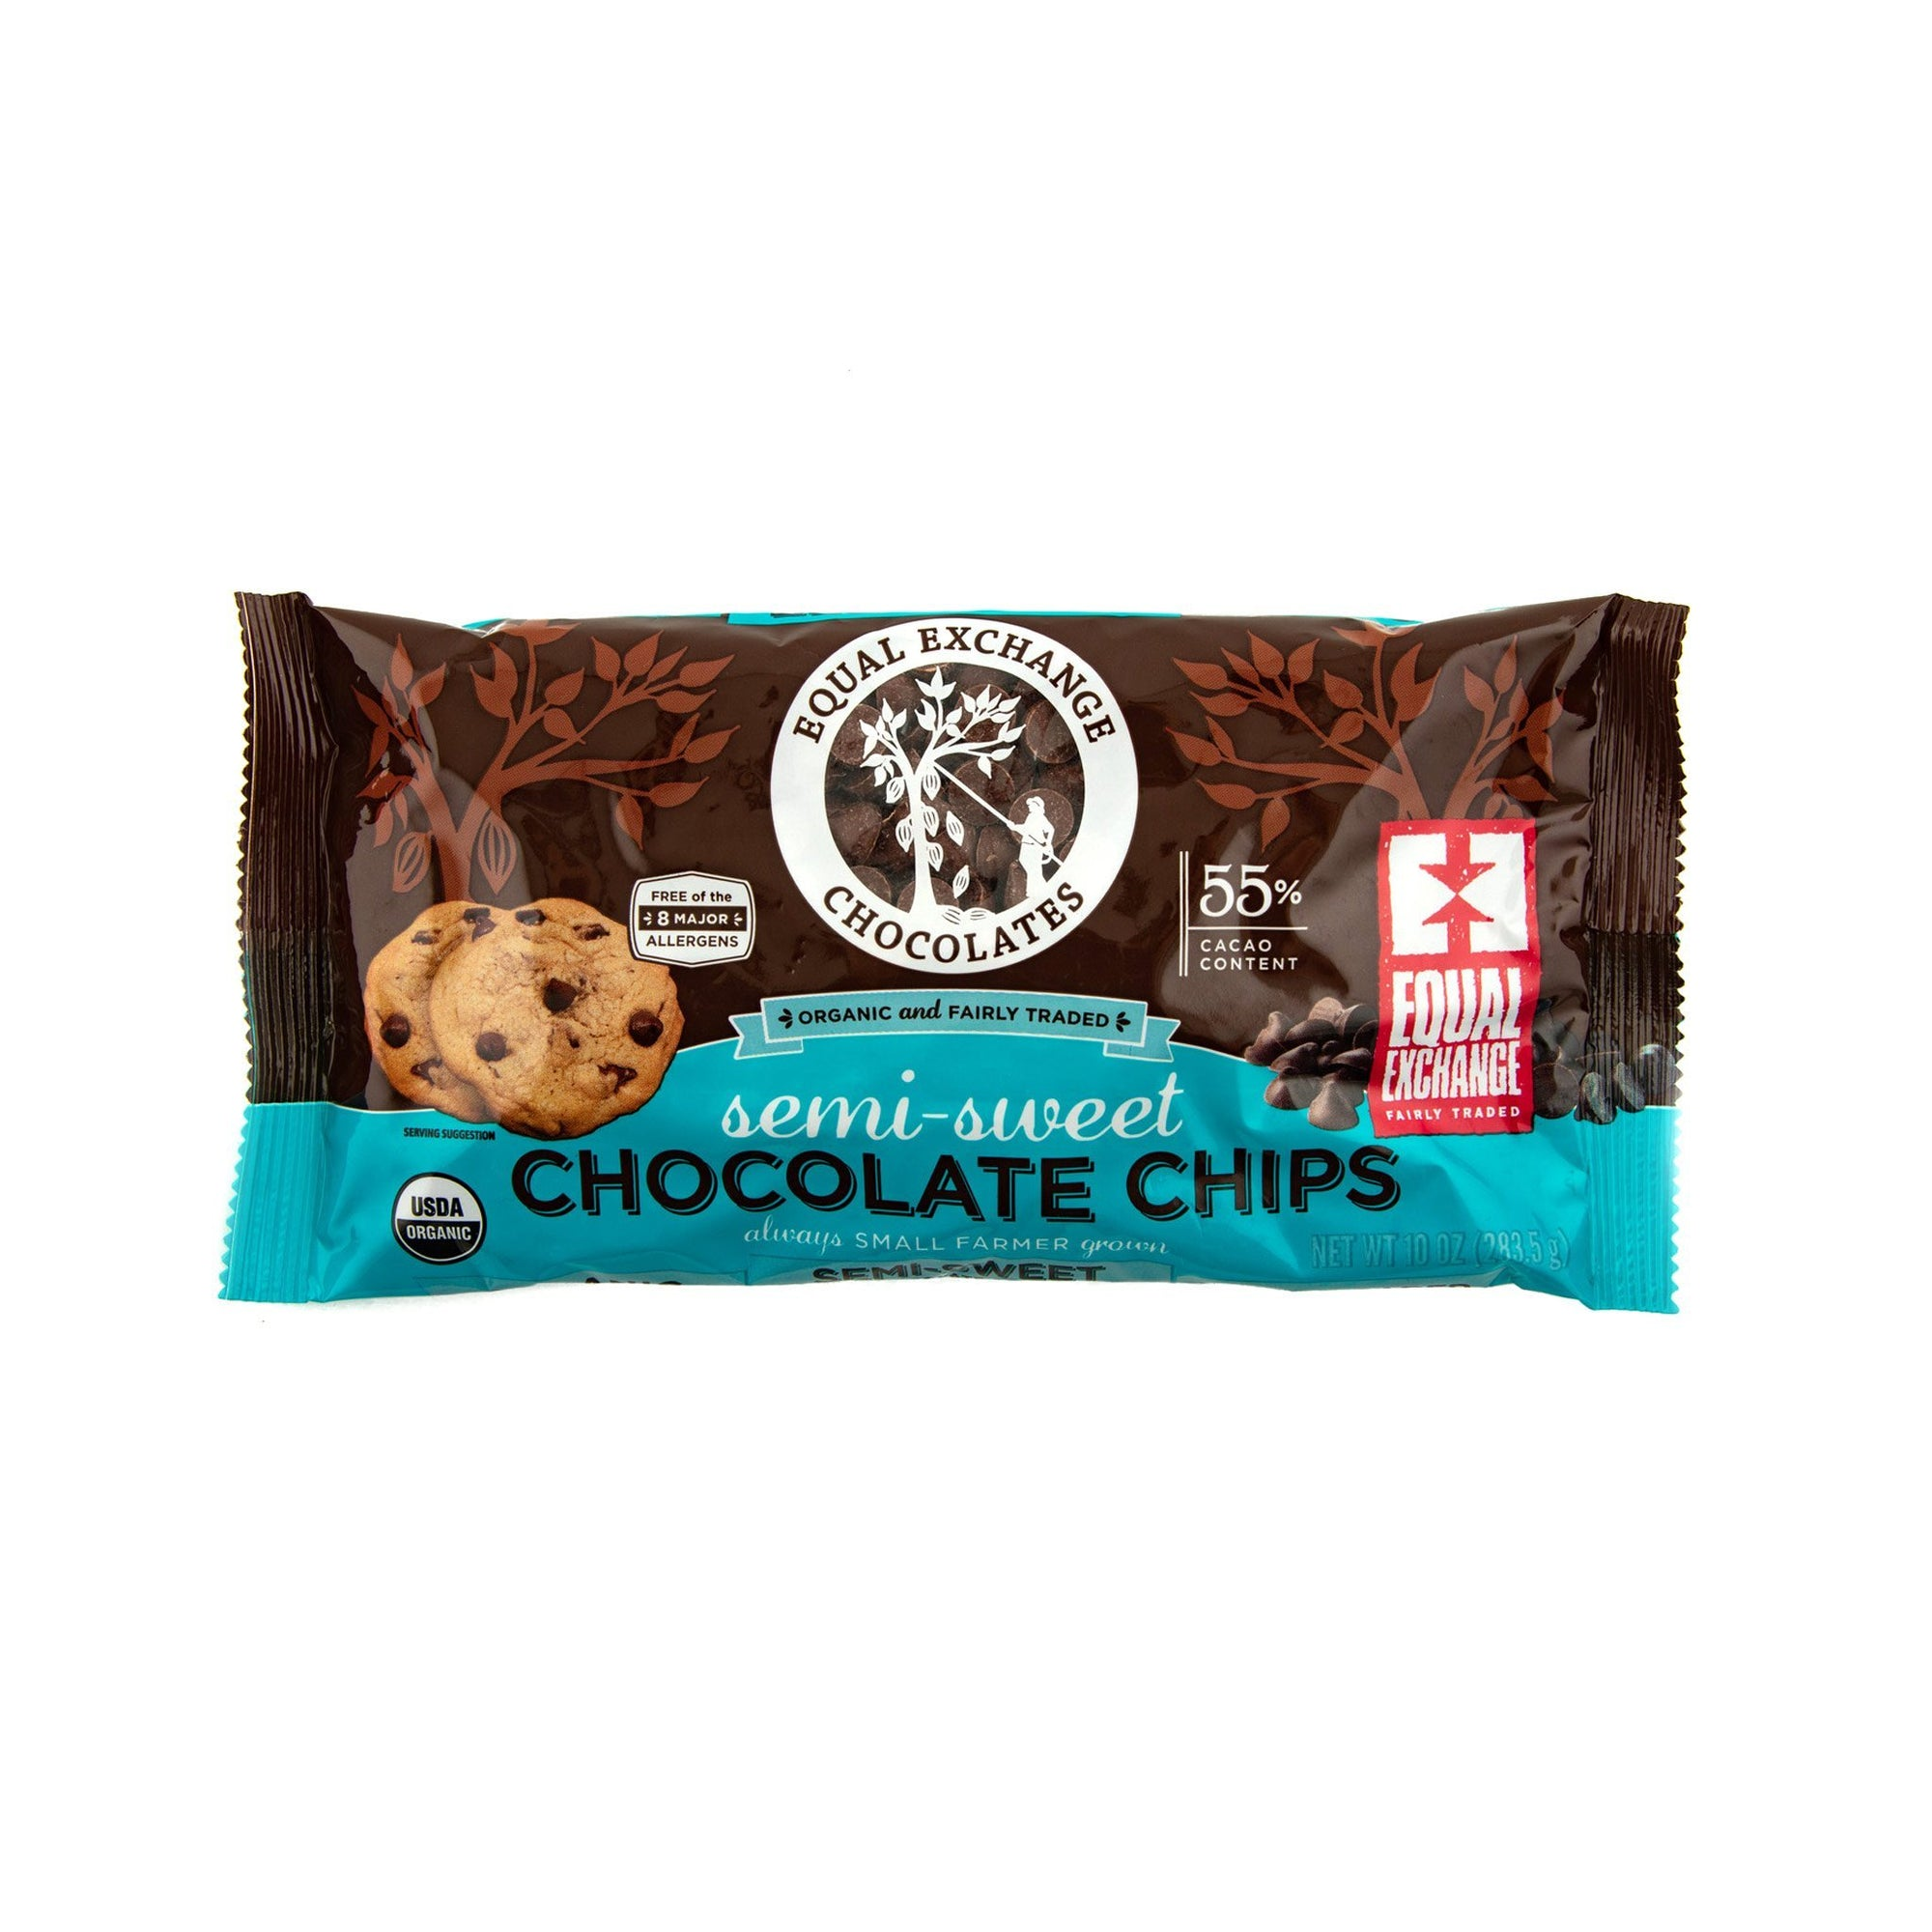 Organic Semi-Sweet Chocolate Chips - Equal Exchange - 10 oz